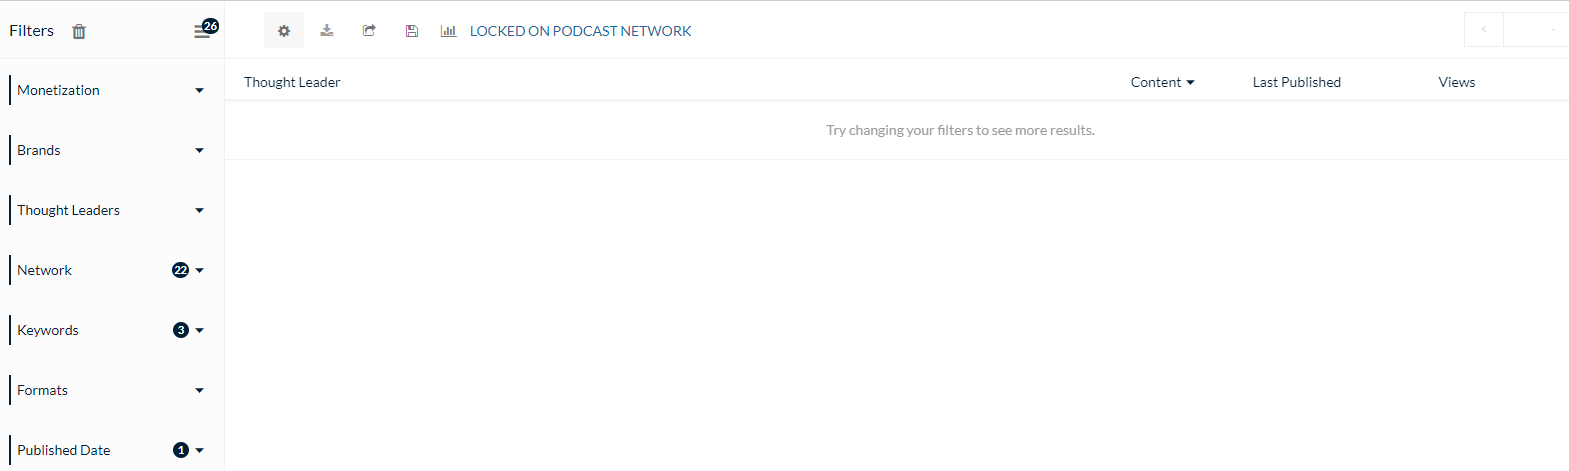 Locked on Podcast zero mentions of above keywords